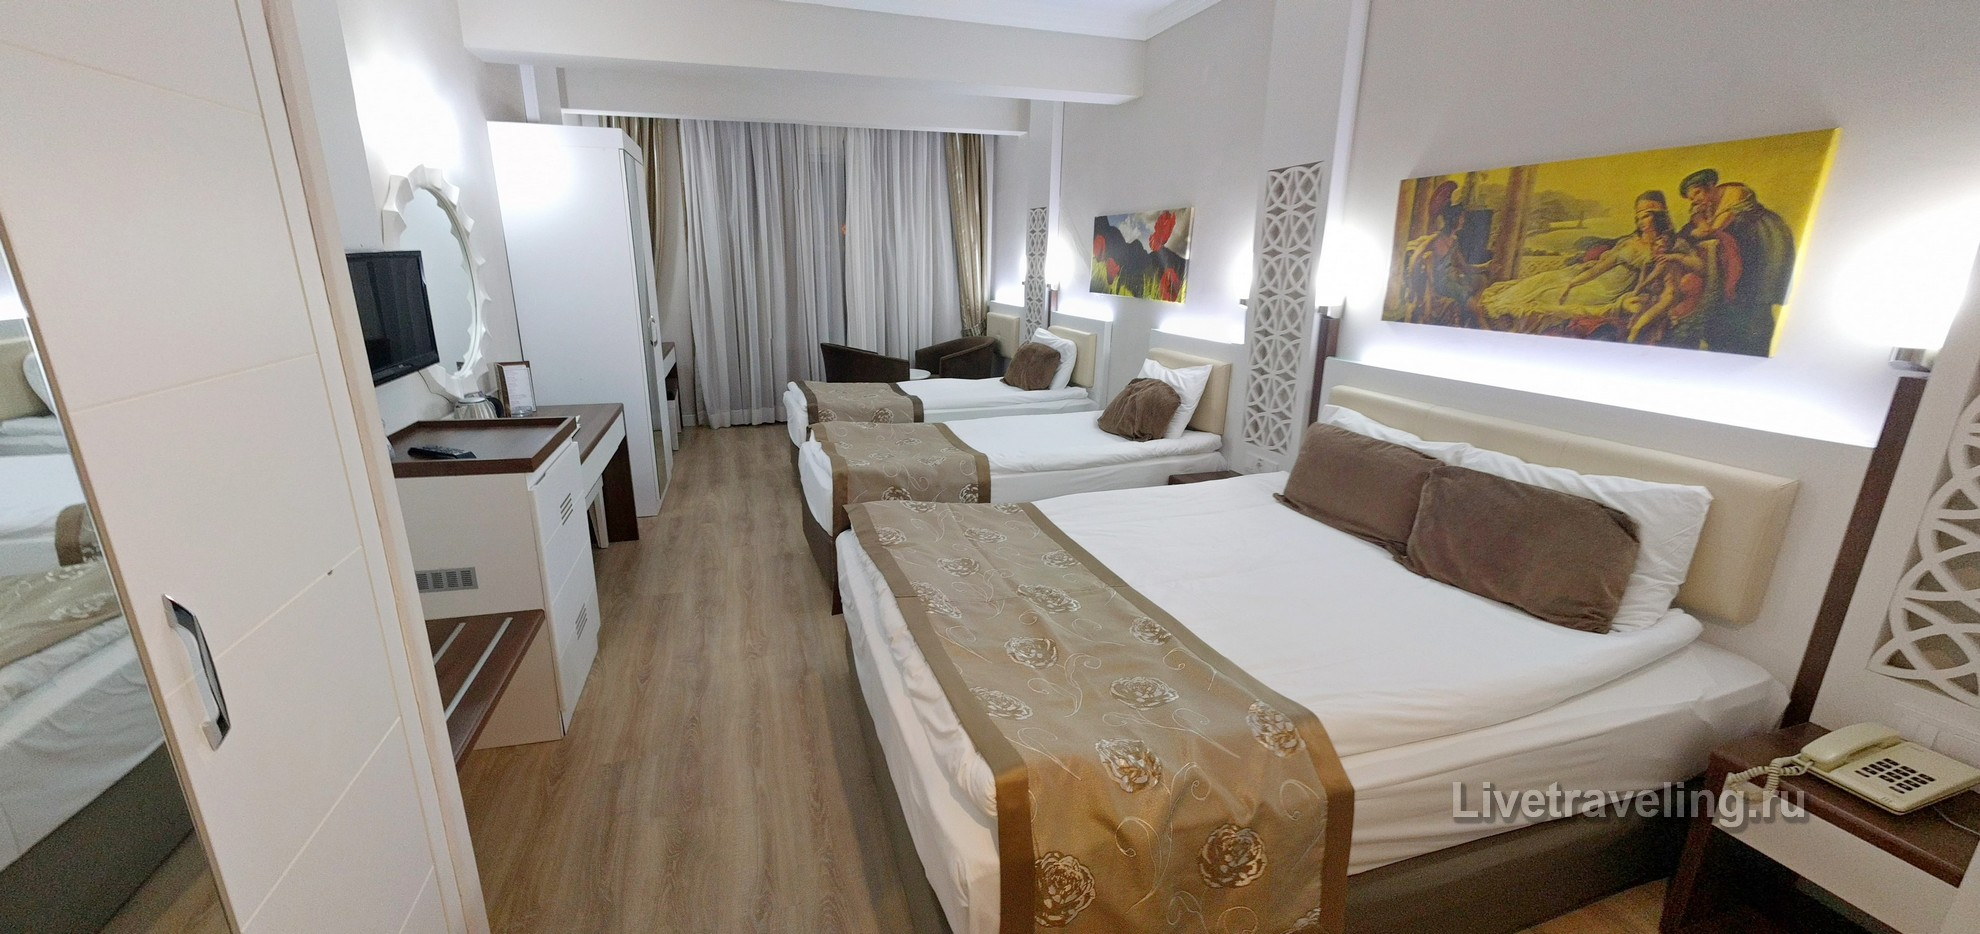 Отзыв об 5* Linda Resort Hotel в Сиде